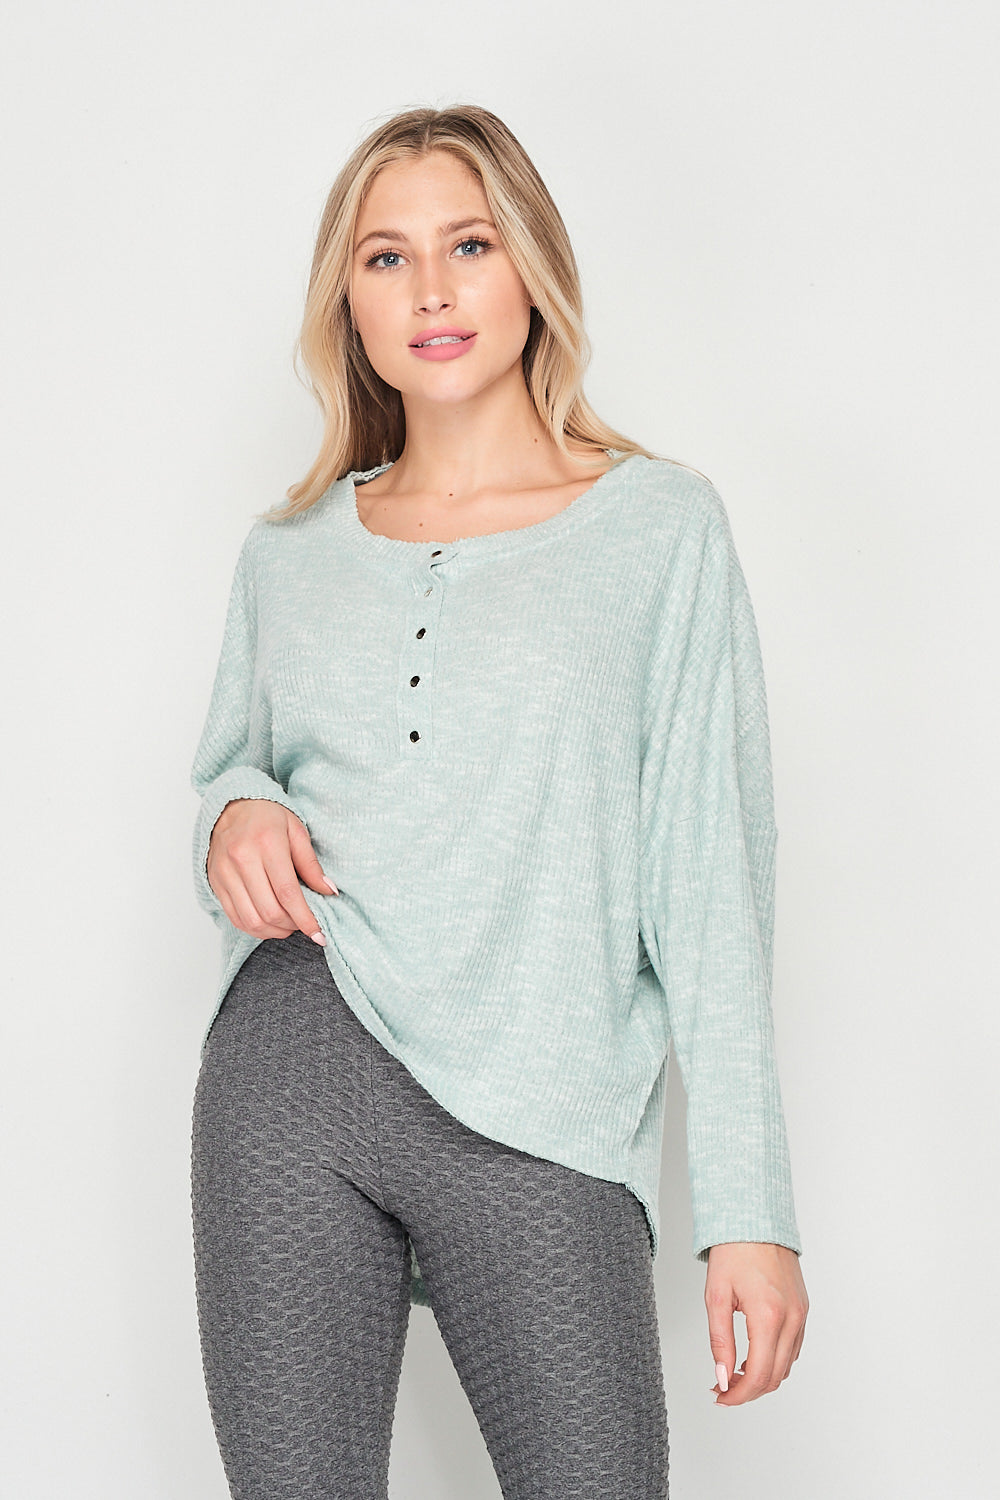 Blank Lewks | Roxy Long Sleeve Soft Knit Henley Top | Mint